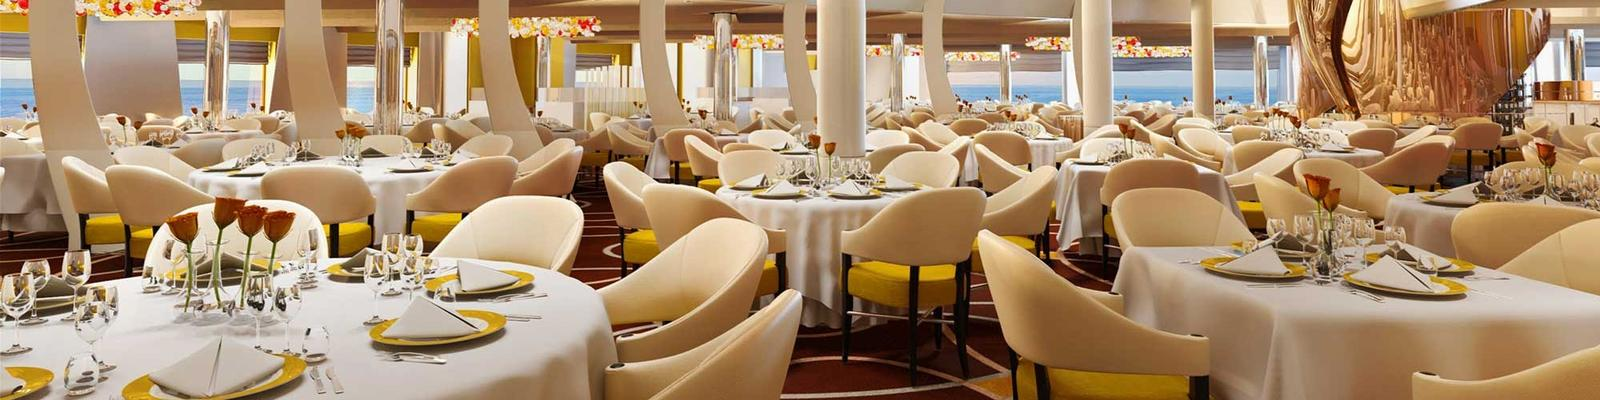 9 Things Not to Do in a Cruise Ship Main Dining Room (Photo: Holland America Line)